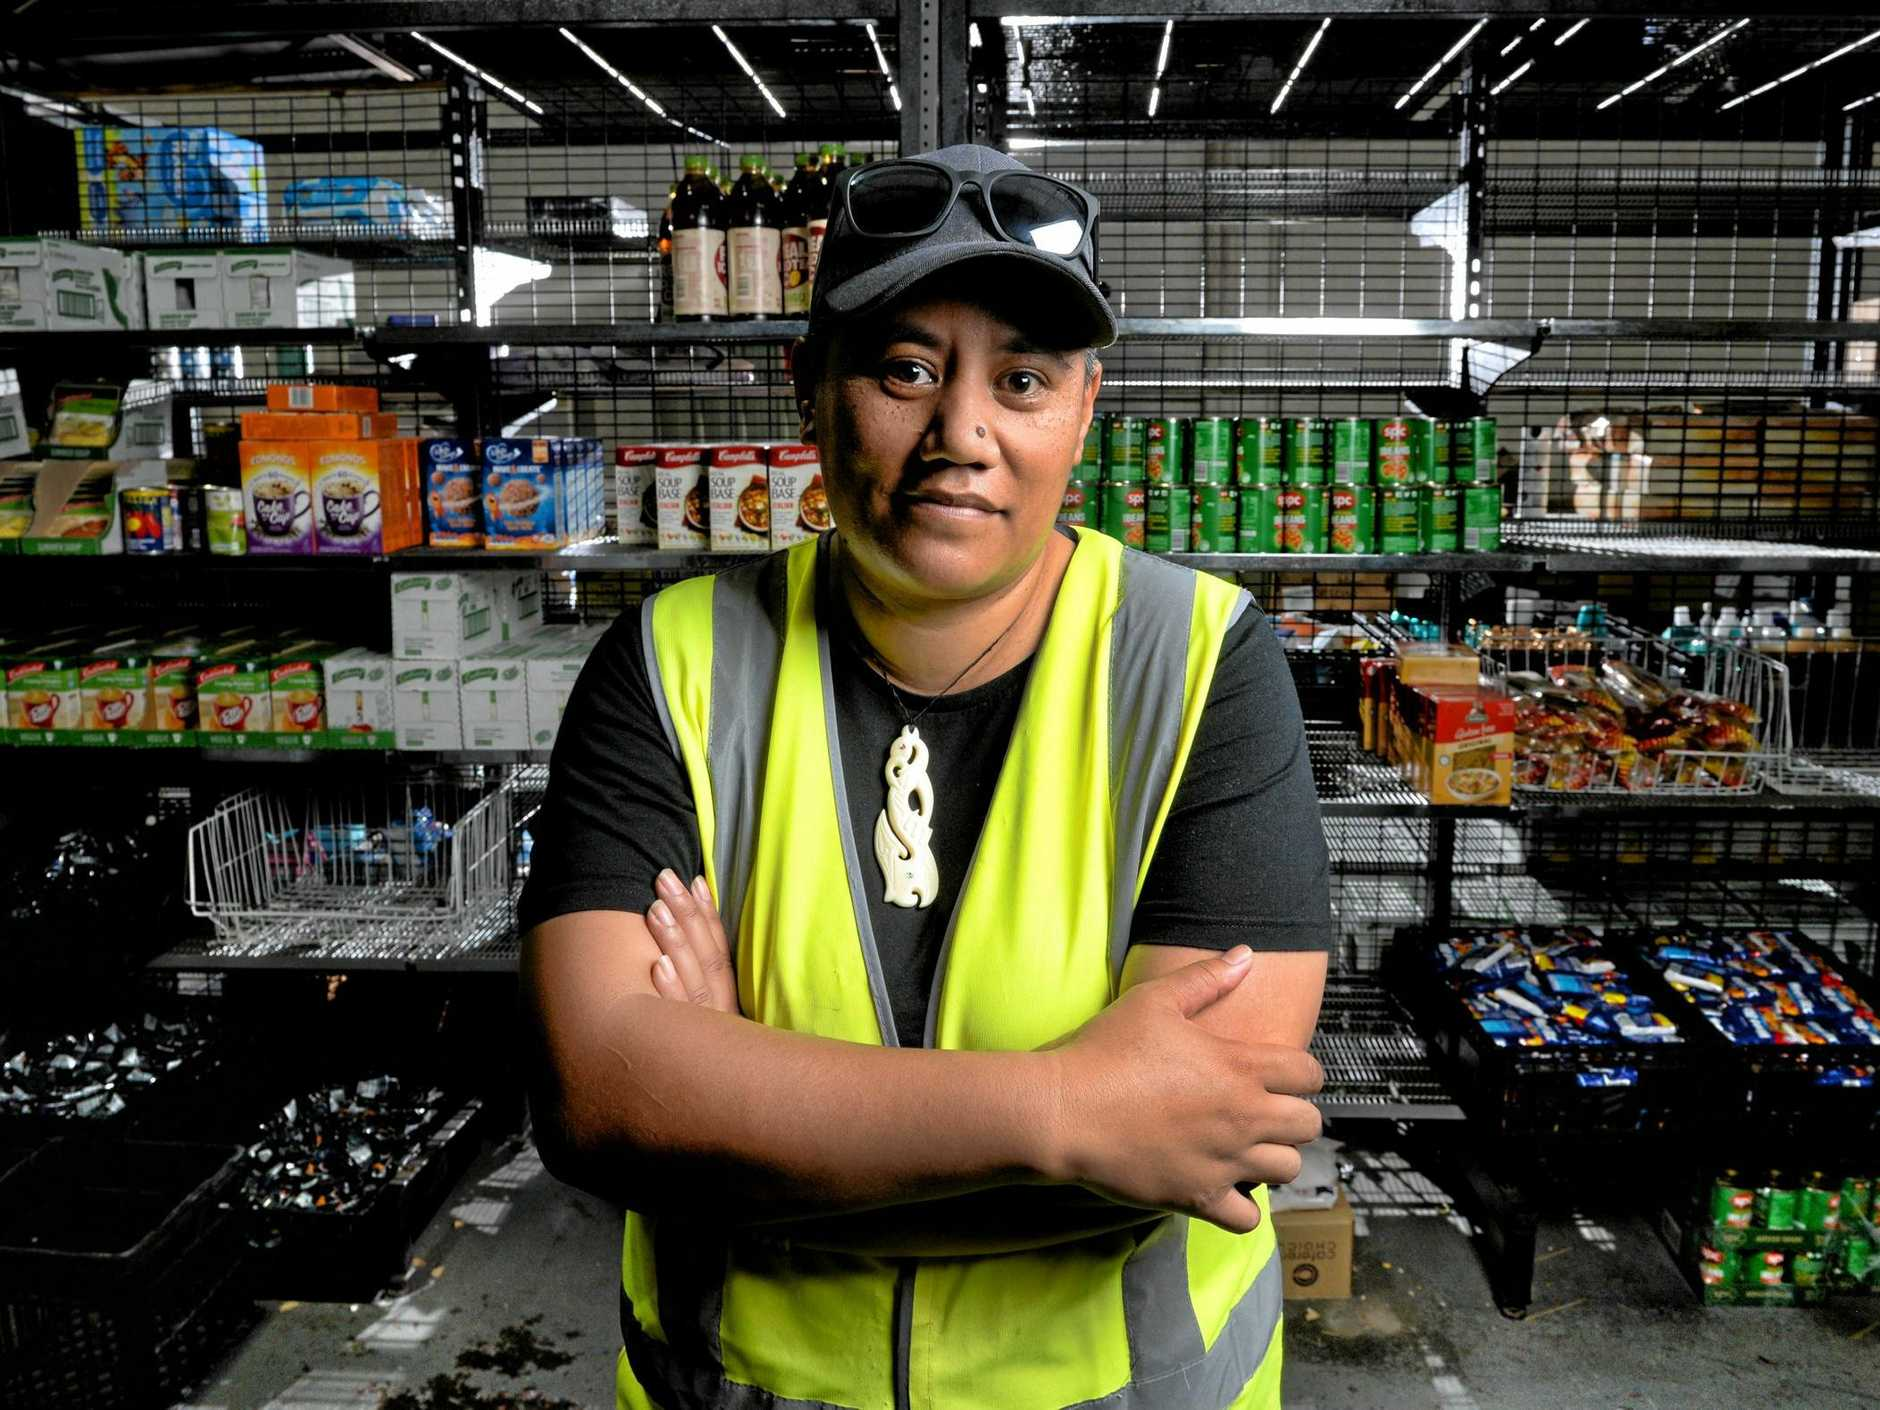 Thousands of people across Ipswich rely on Qim's efforts every month to feed themselves and their families. Qim is the manager of the Lion and the Lamb food distribution centre in Darling St. She led a rebuild of the centre last month after heartless thieves destroyed all the centre's food stock.